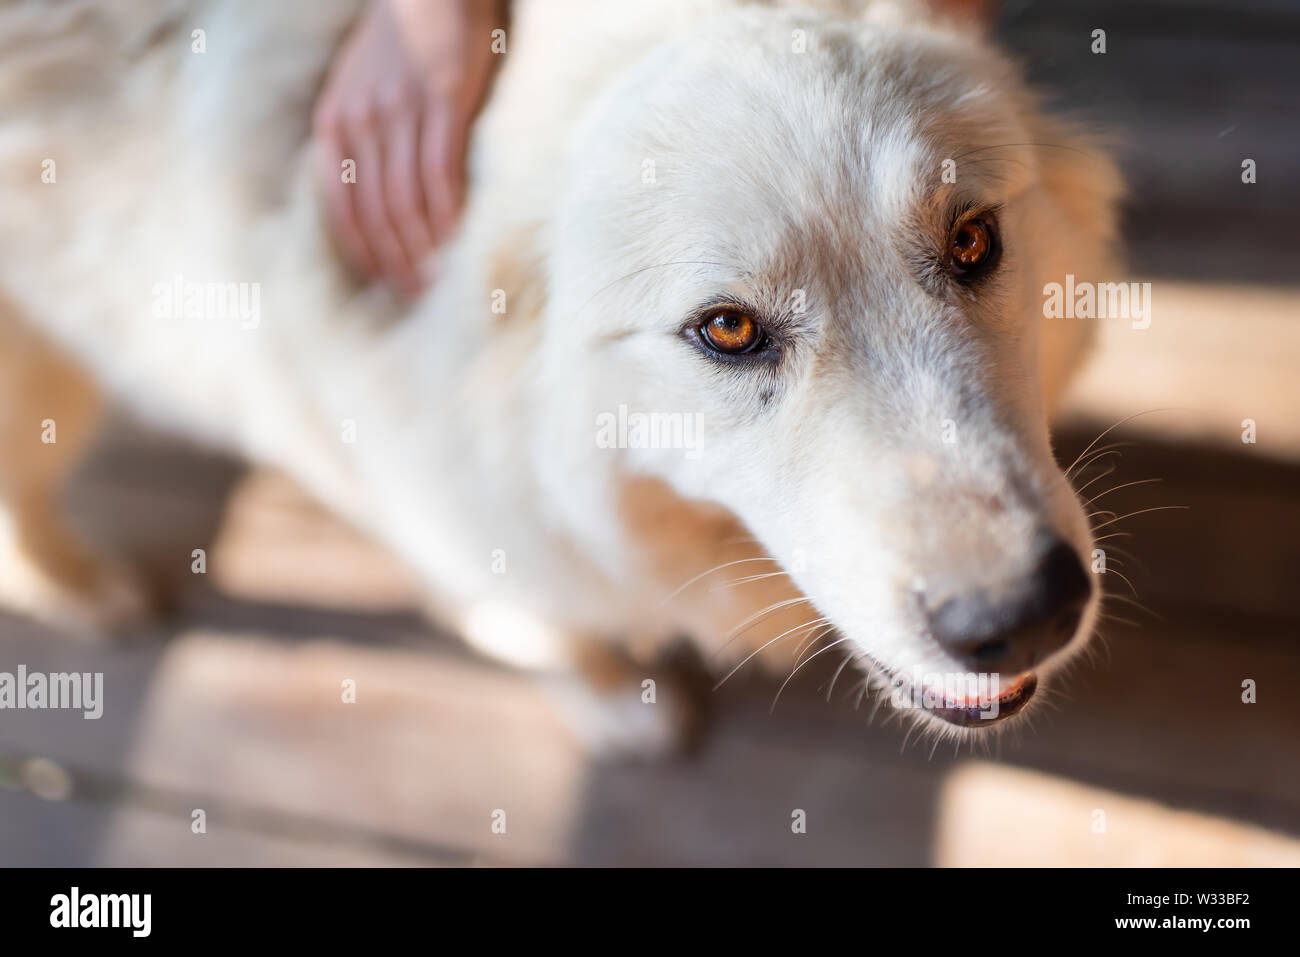 Closeup of young white great pyrenees dog looking up with brown eyes and person owner petting touching back - Stock Image